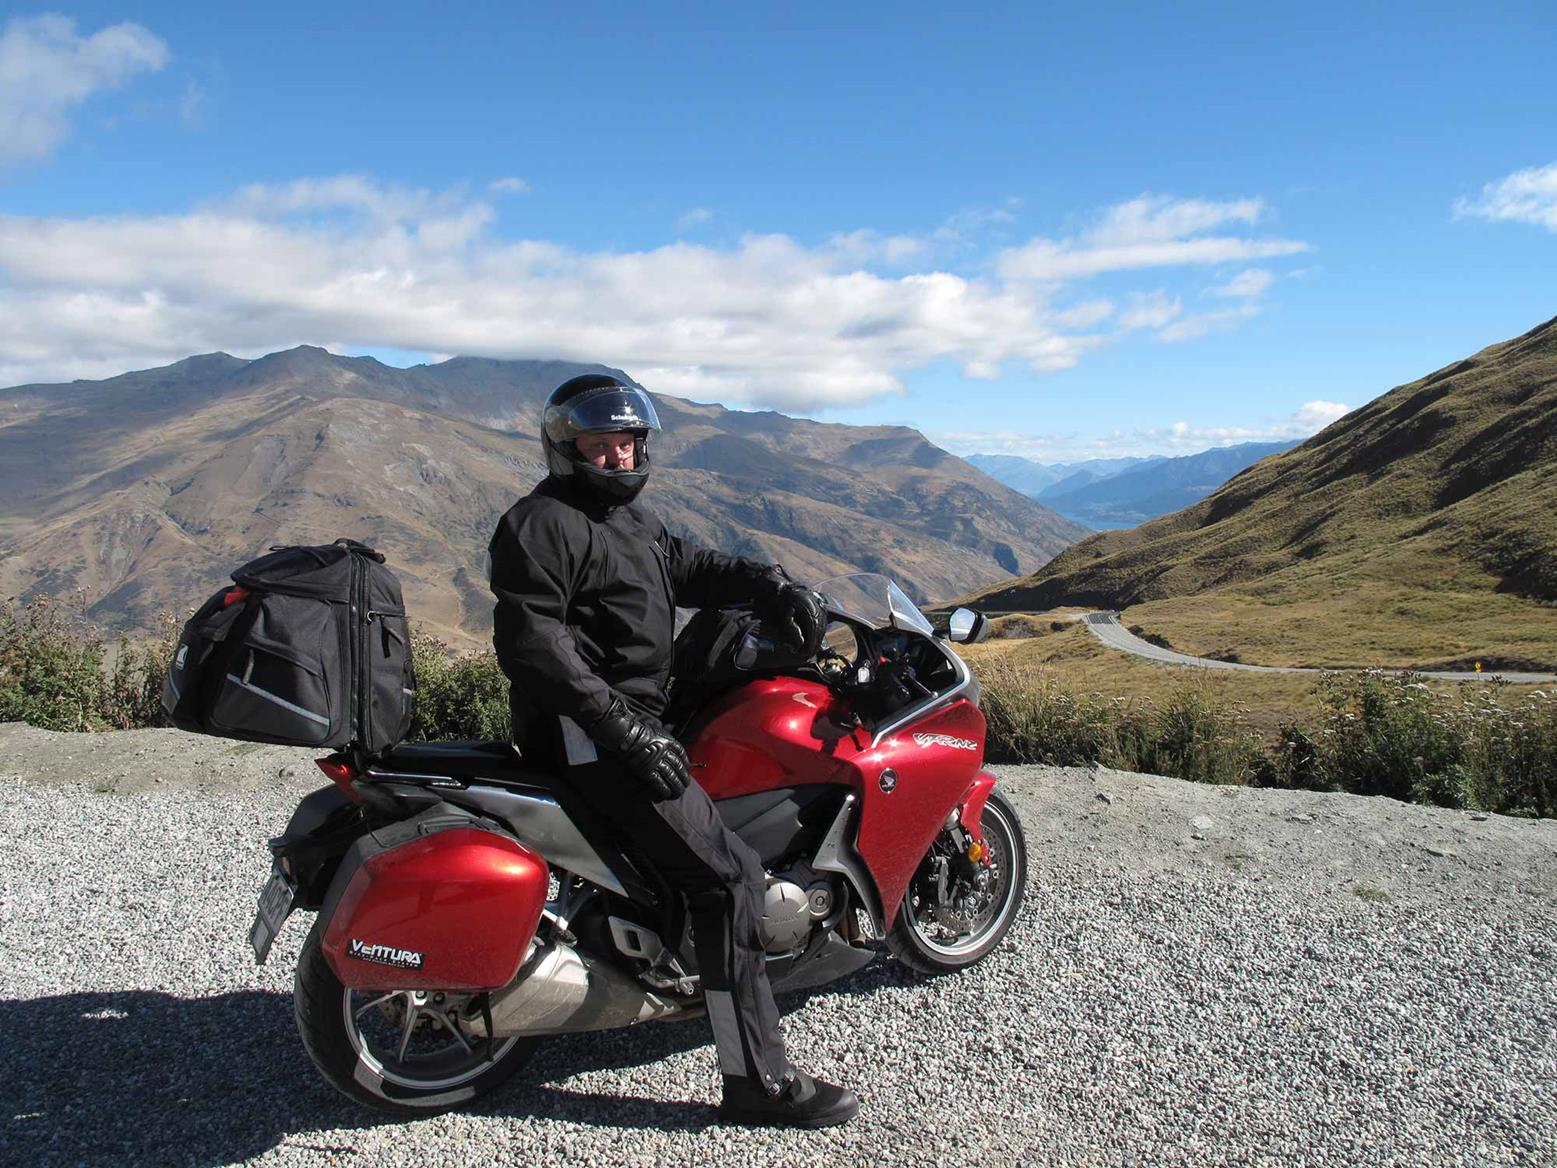 Touring on the VFR1200F DCT